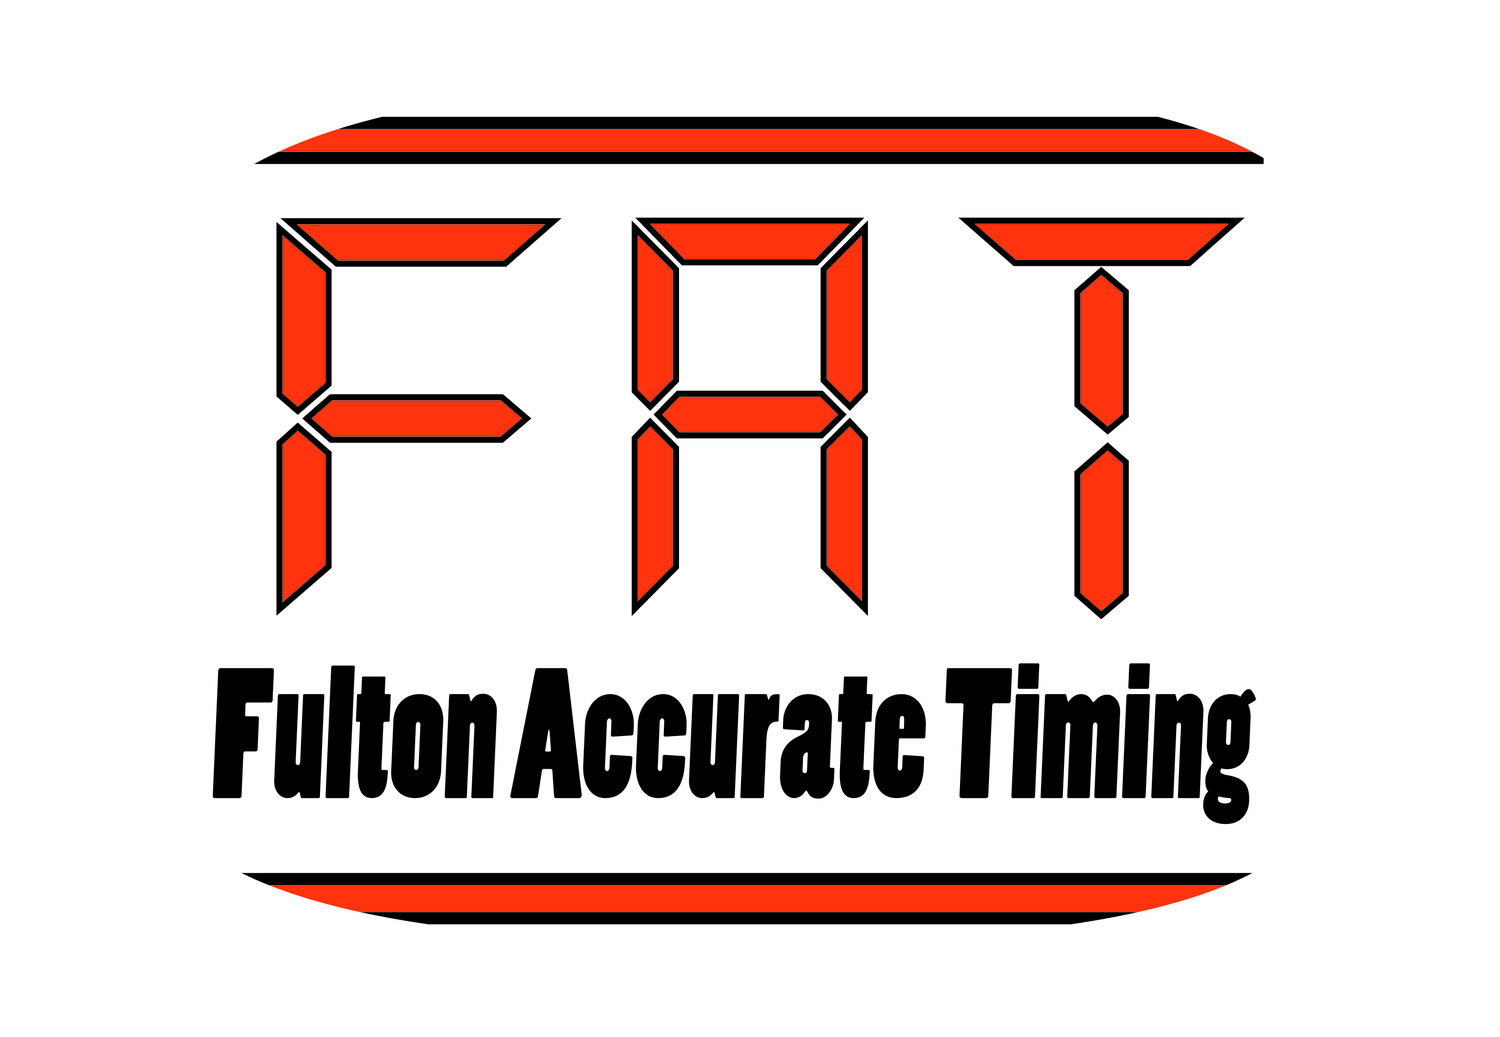 schedule fulton accurate timing